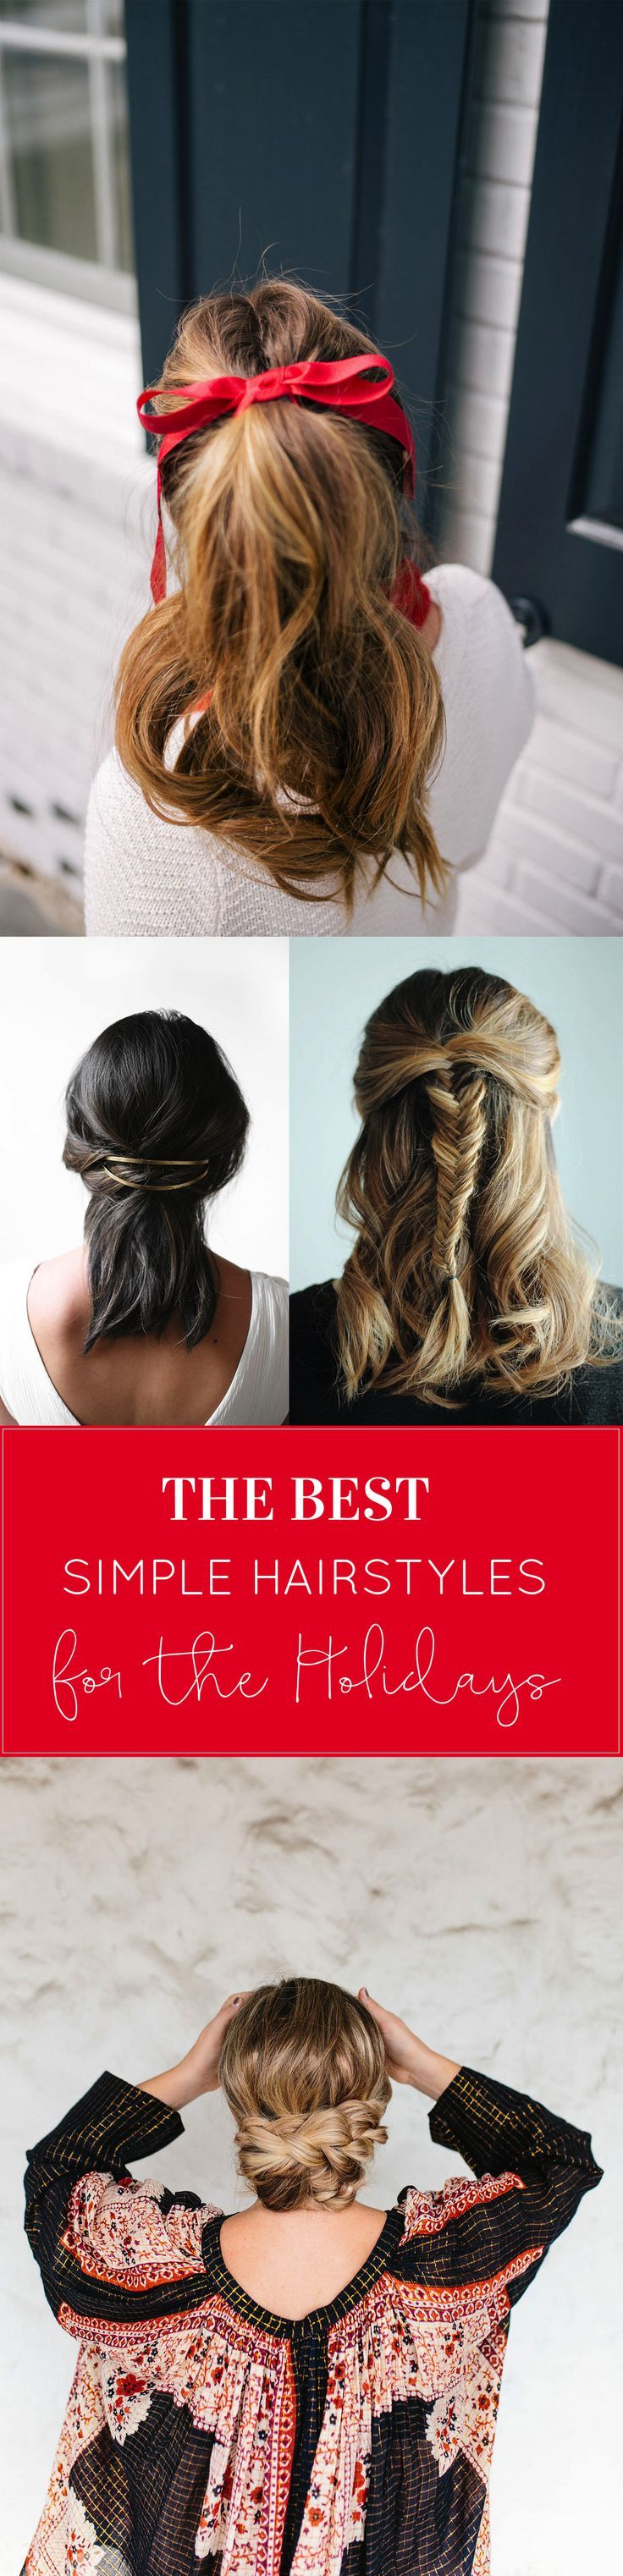 17 best Quick and Cute Hairstyles images on Pinterest